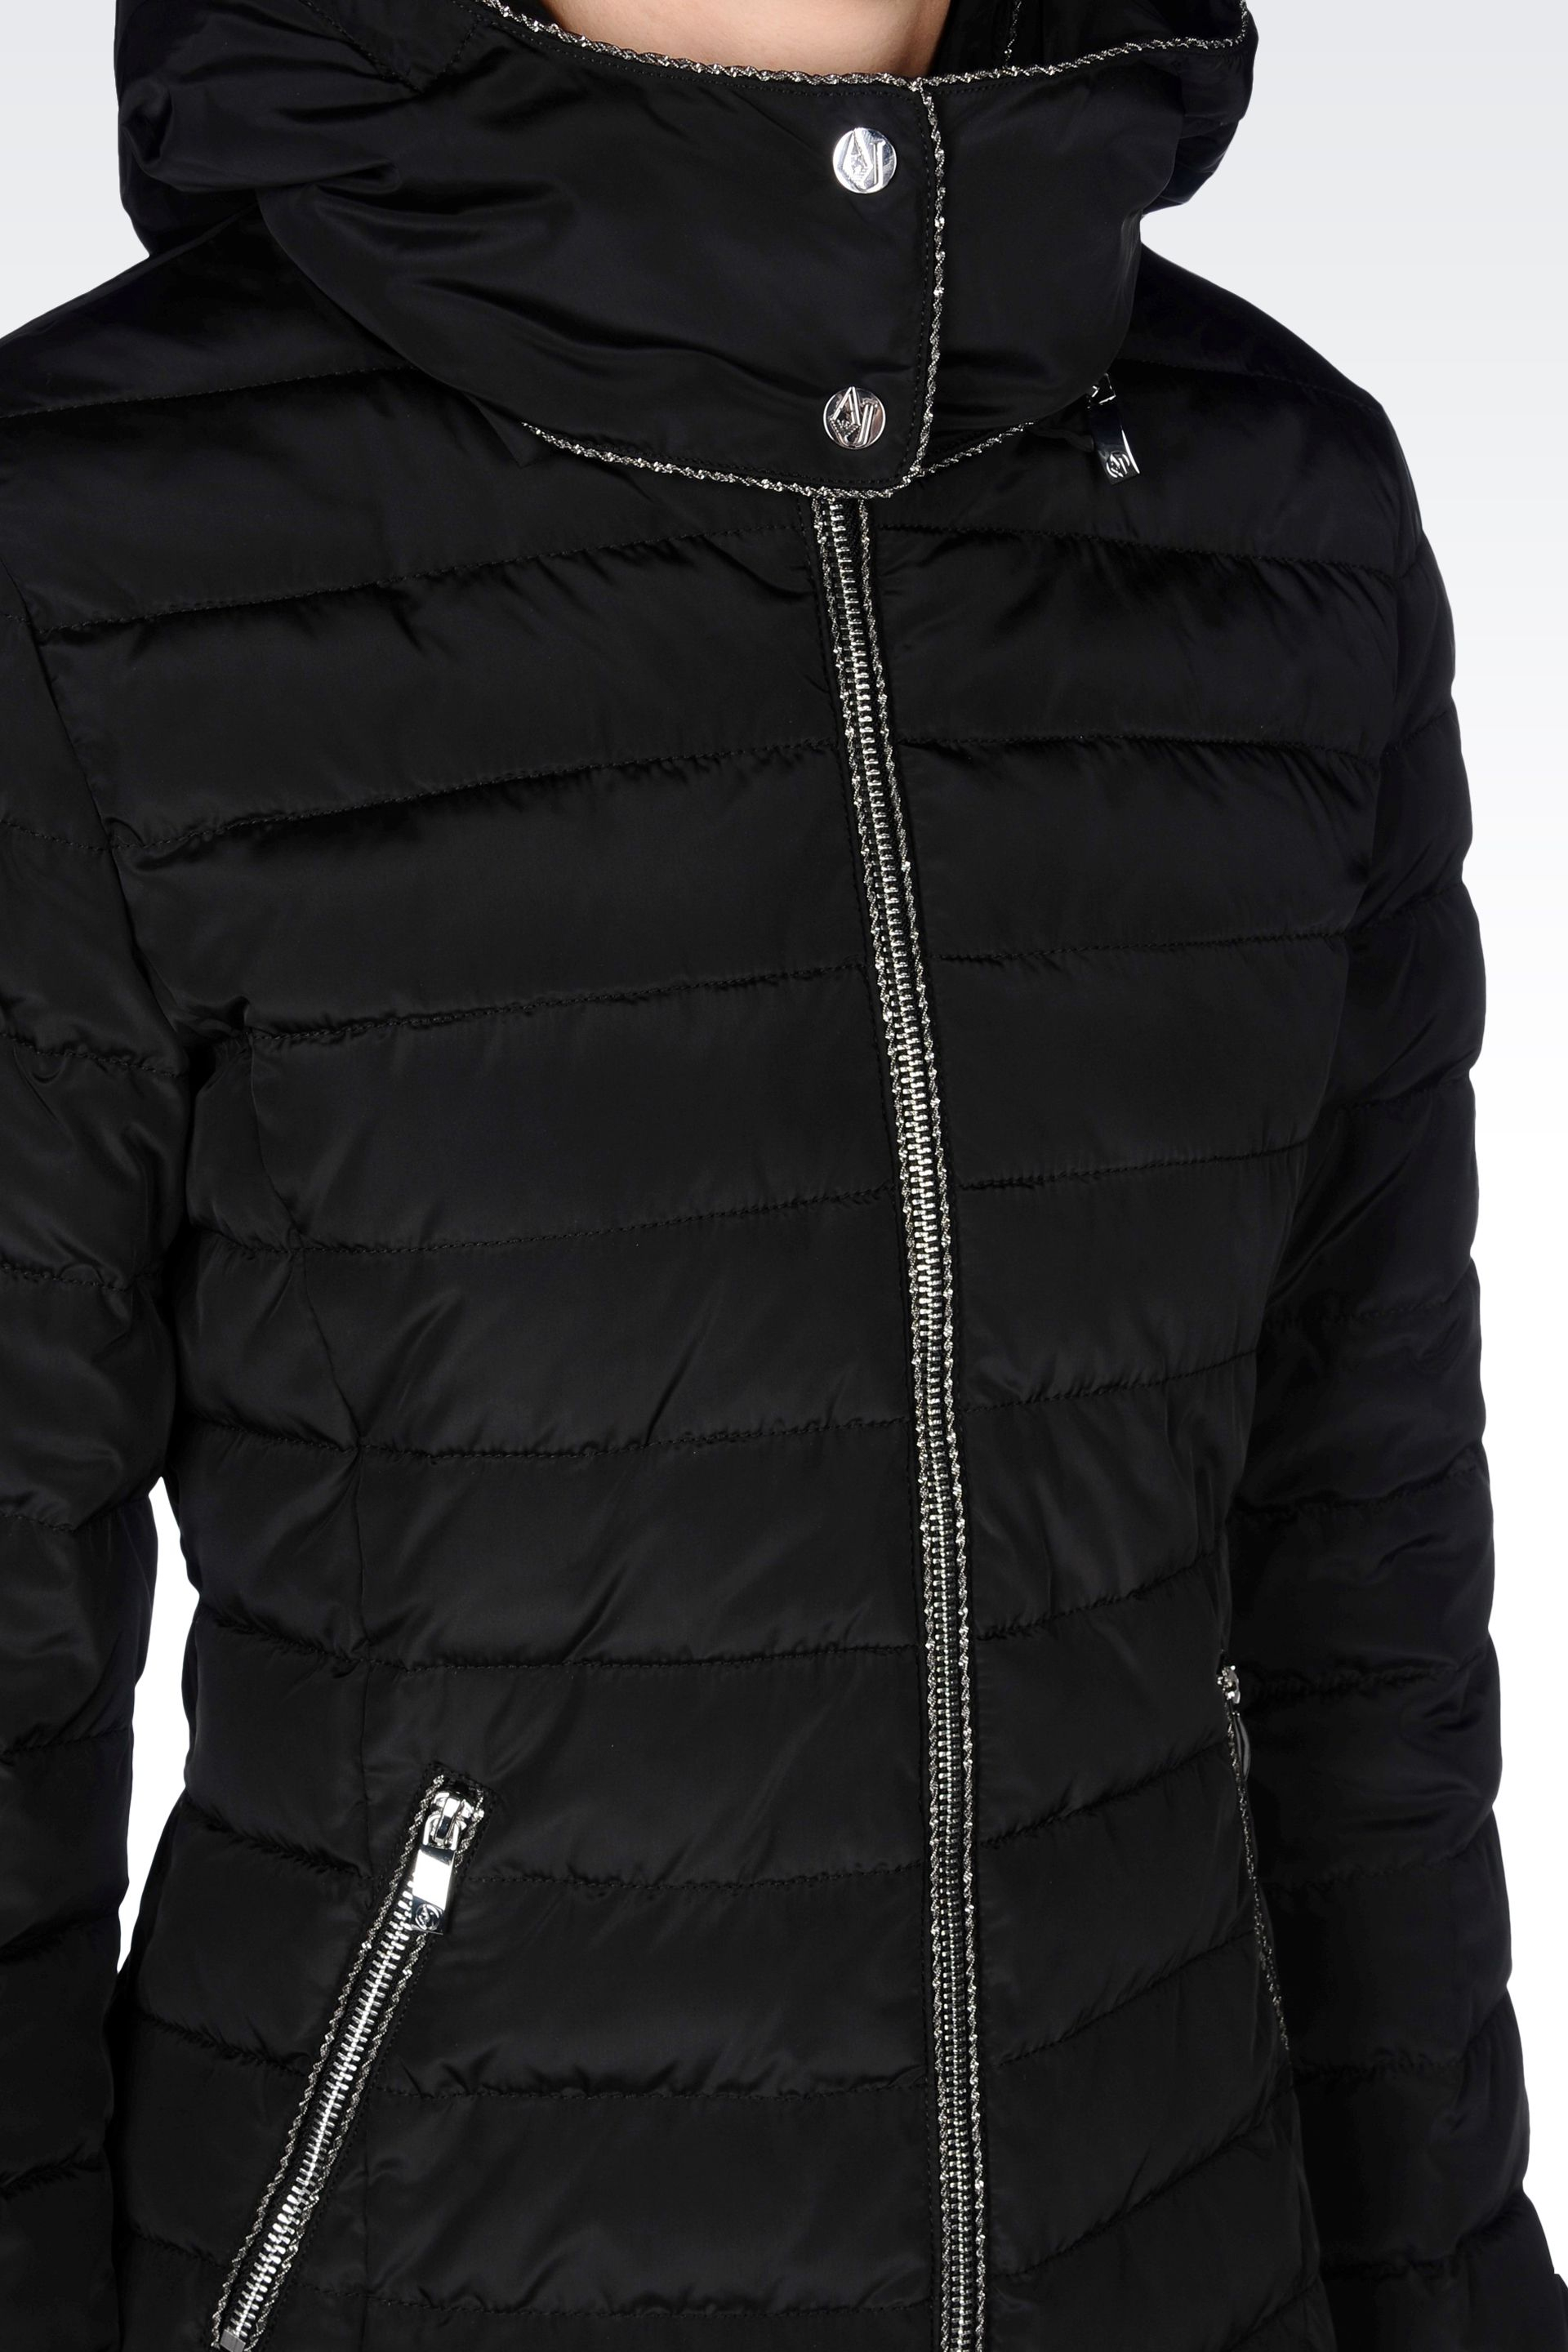 6d135f9fa6 Armani Jeans Black Hooded Down Jacket in Technical Fabric